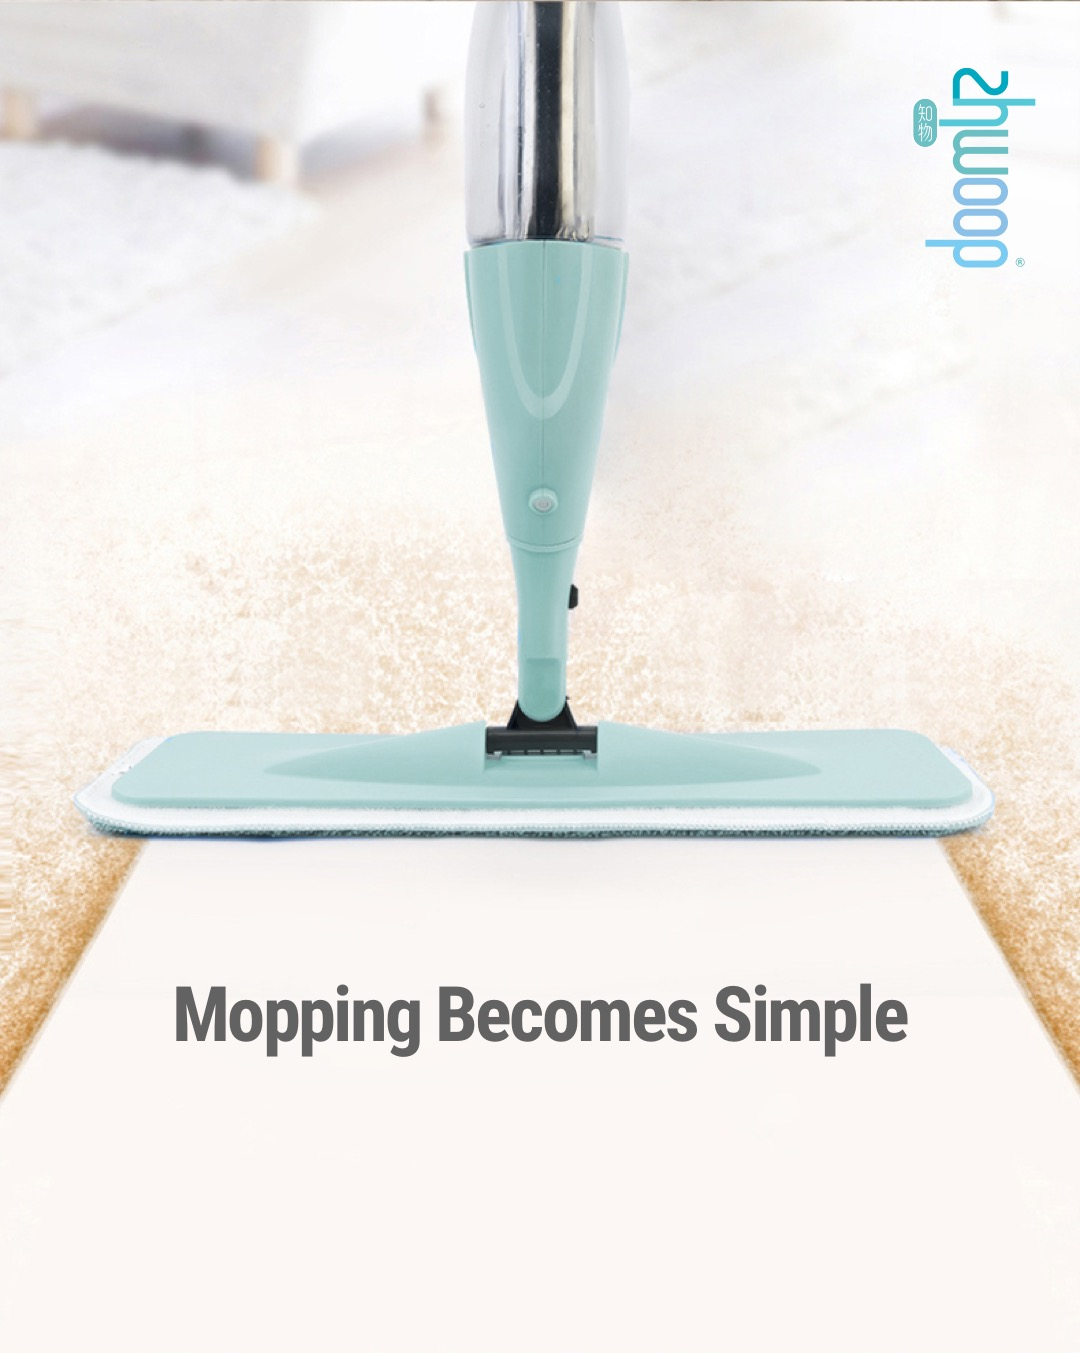 Zhwoop 2-in-1 Multi-function Spray Mop (with Window Glass Mop)